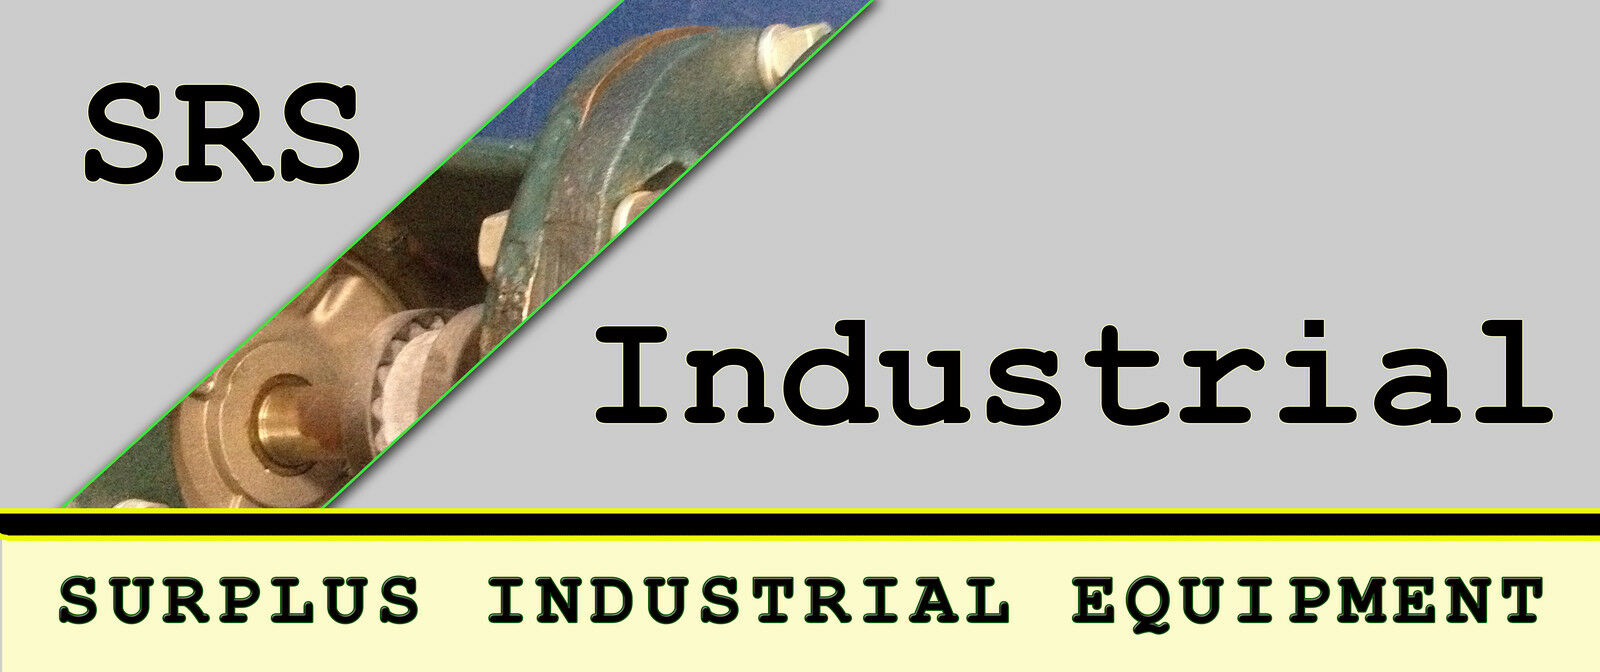 SRS Industrial